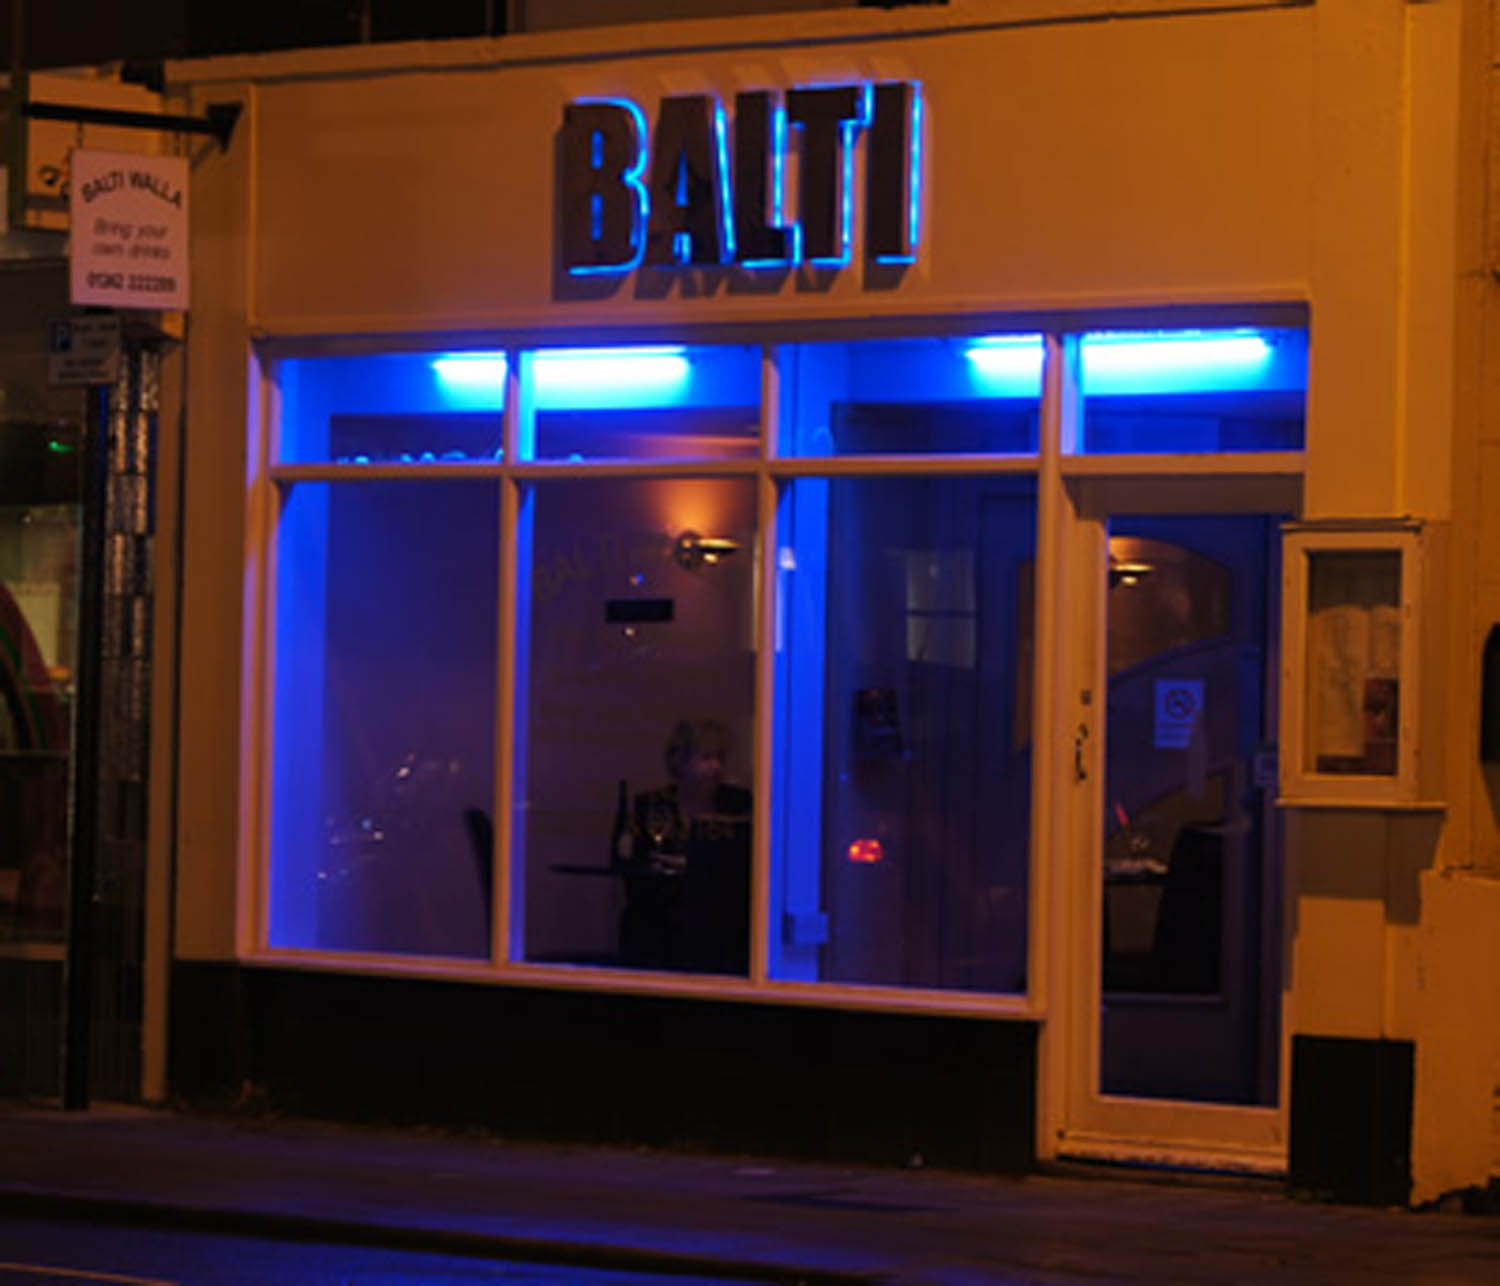 Restaurant & Takeaway Balti Walla G153